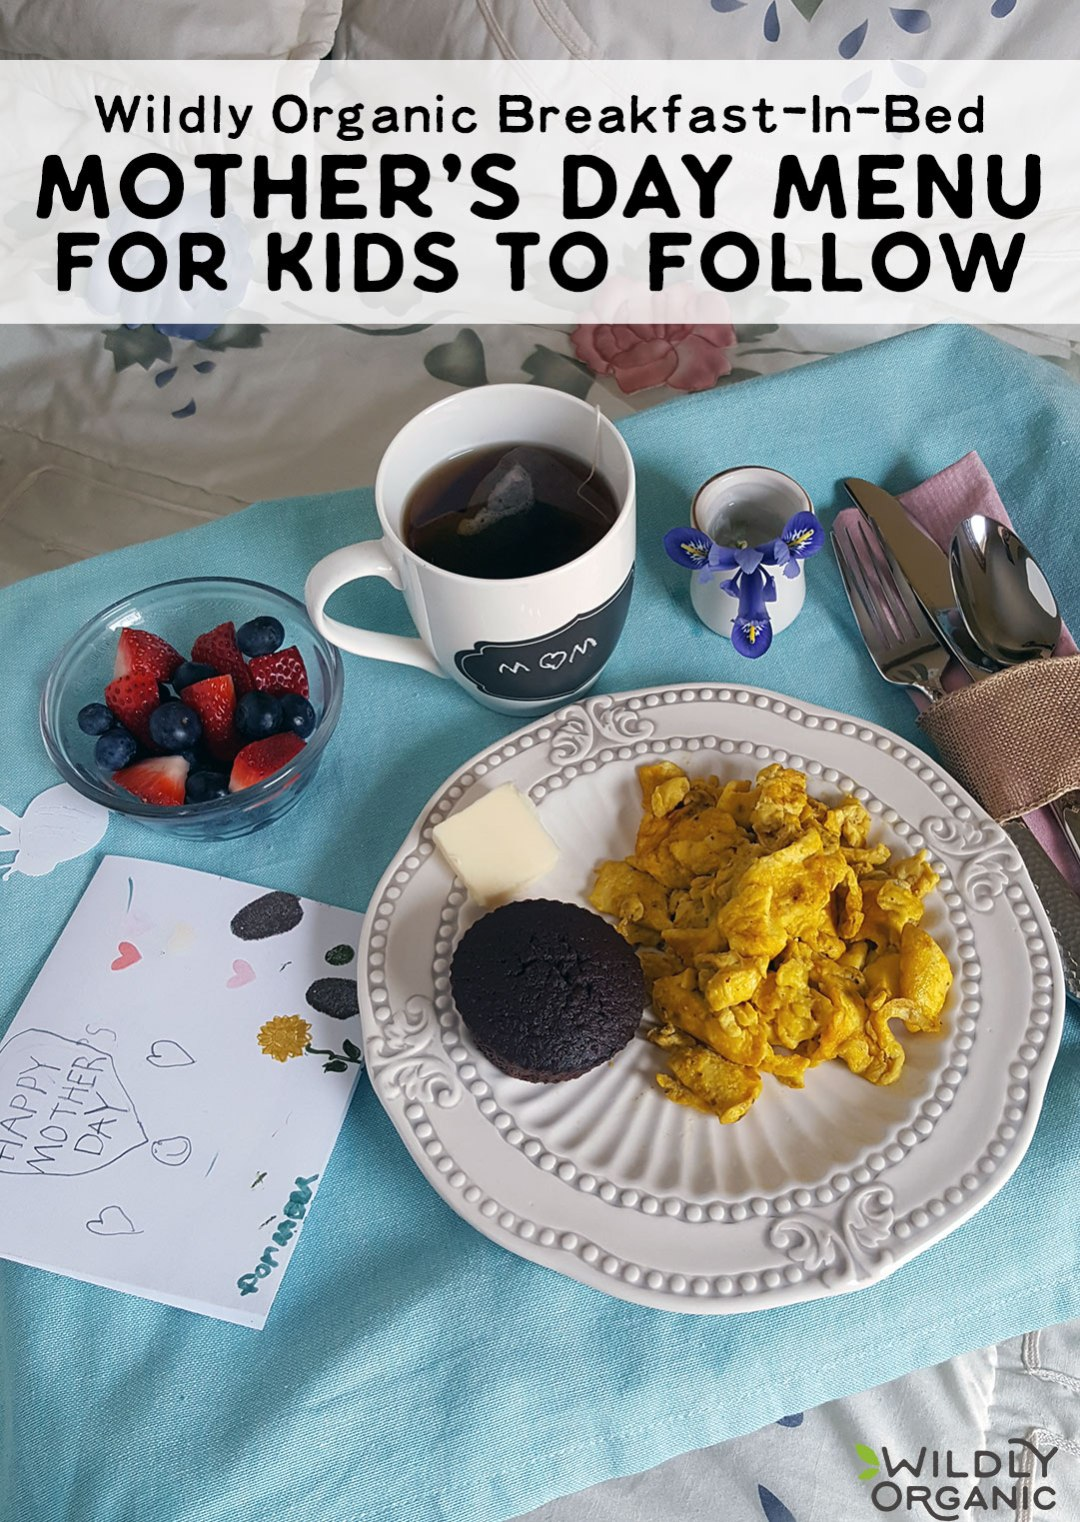 With a little help, kids really can put together a tasty breakfast for Mom. Here's a Wildly Organic Breakfast-In-Bed Mother's Day Menu Kids Can Follow! Here's everything kids need to create a healthy and special breakfast tray — just make sure to have the fridge stocked for them first!